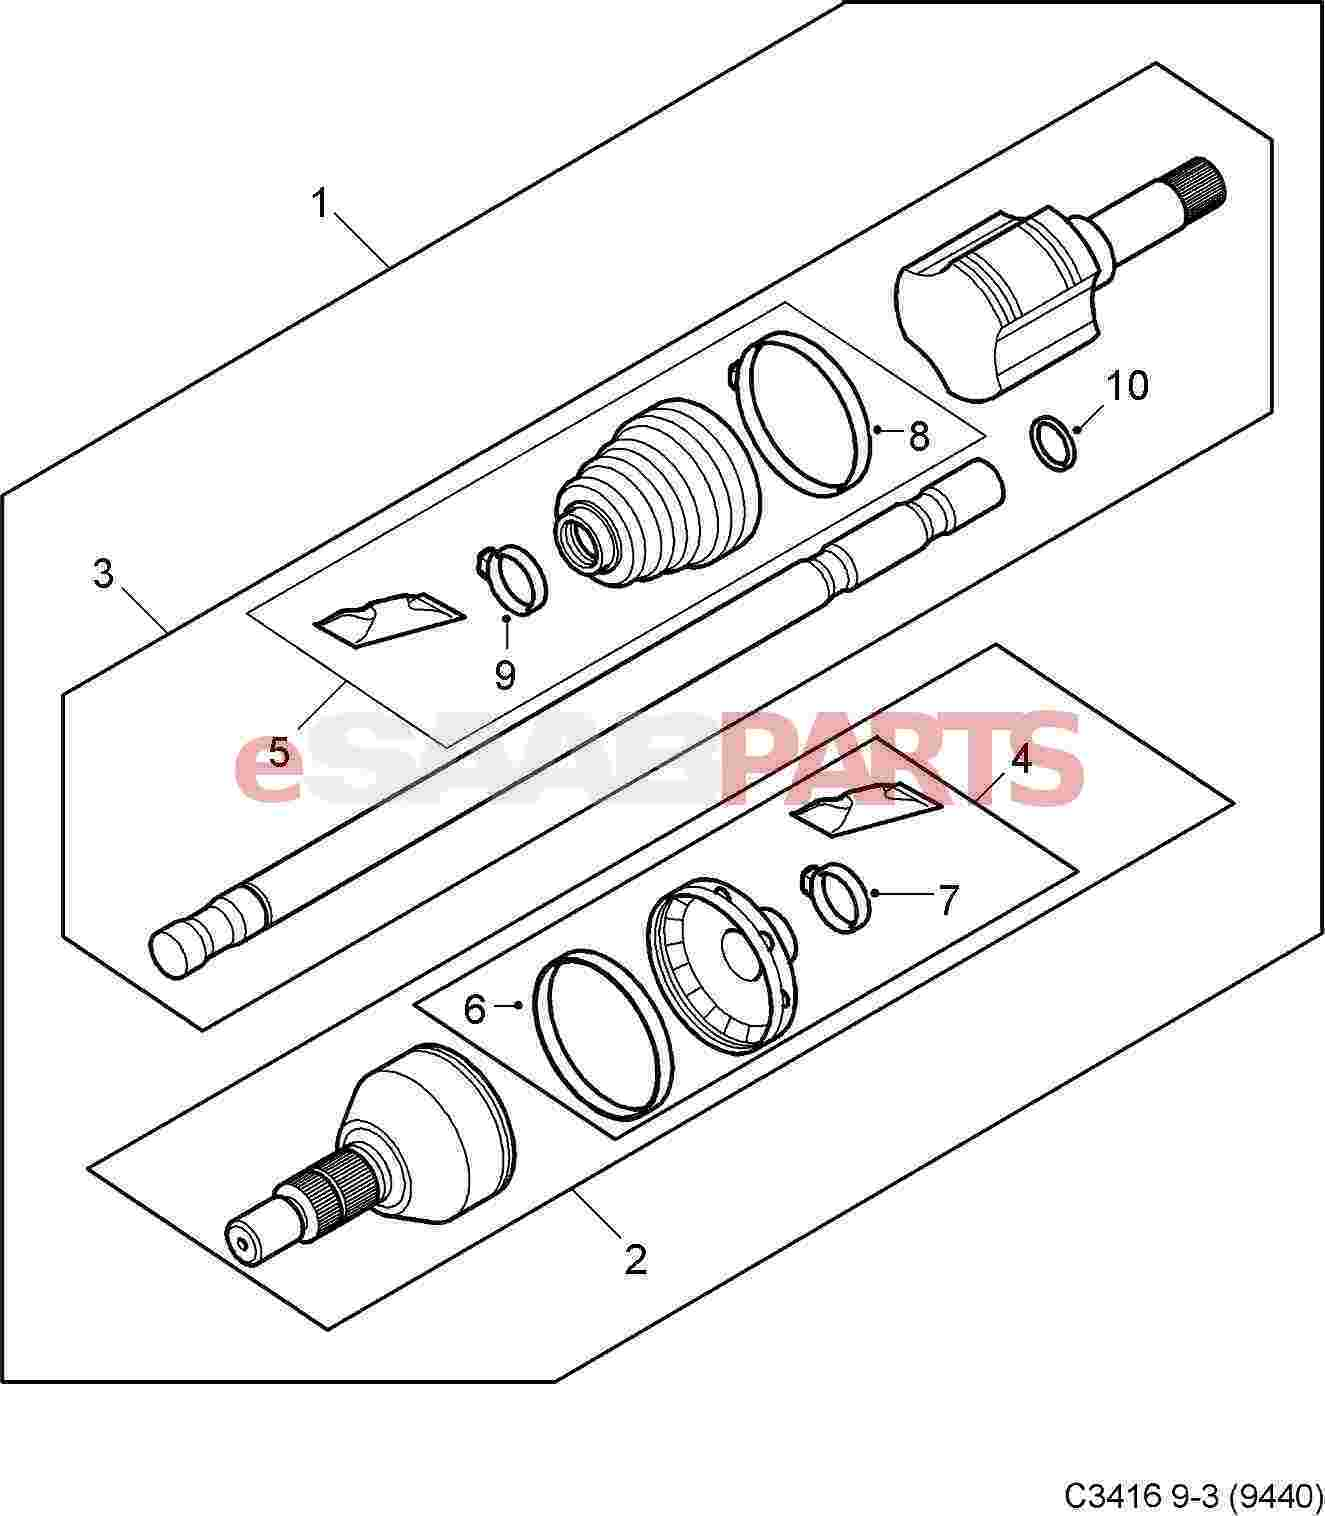 Daewoo Fuse Box Diagram Wiring Diagrams Instructions